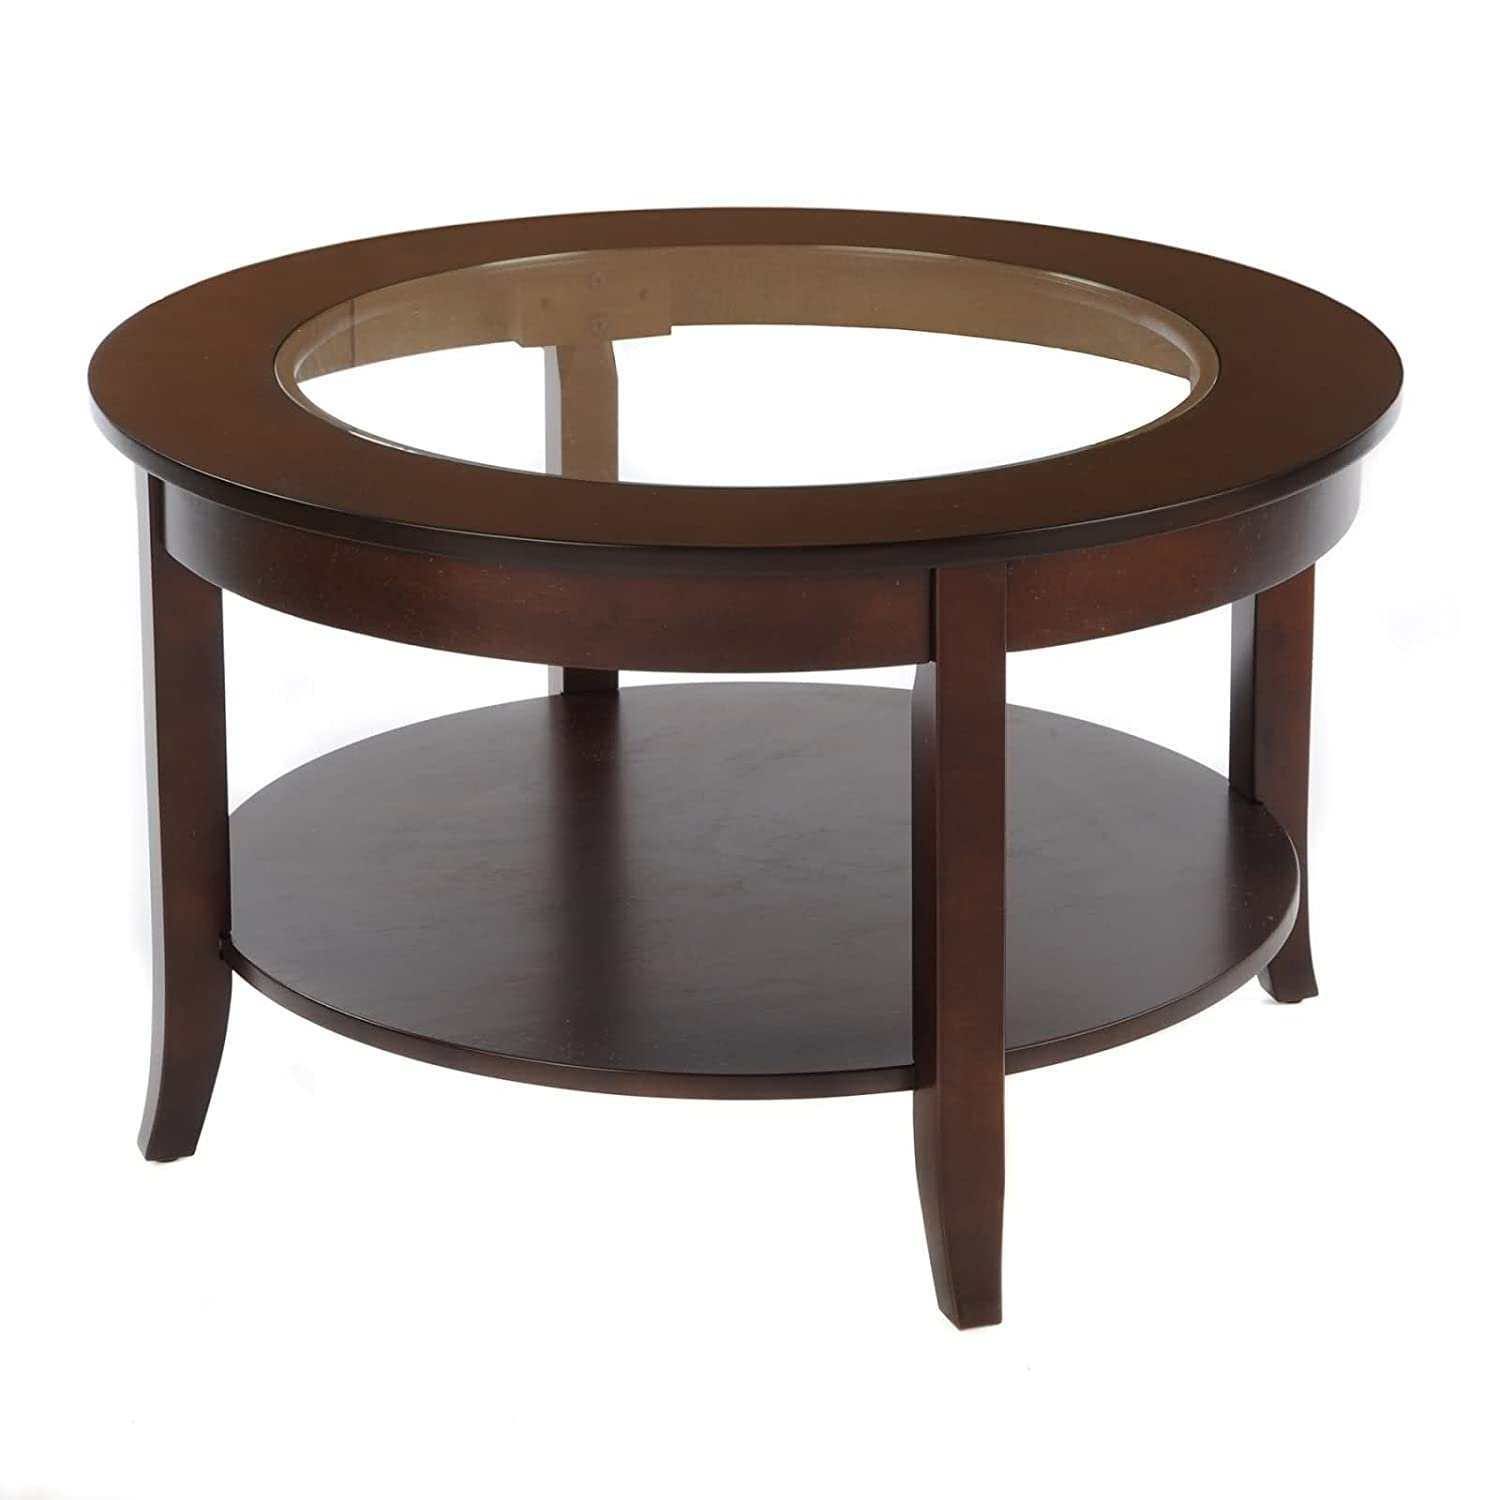 Glass cocktail table home decor and furniture deals for Round glass coffee table top